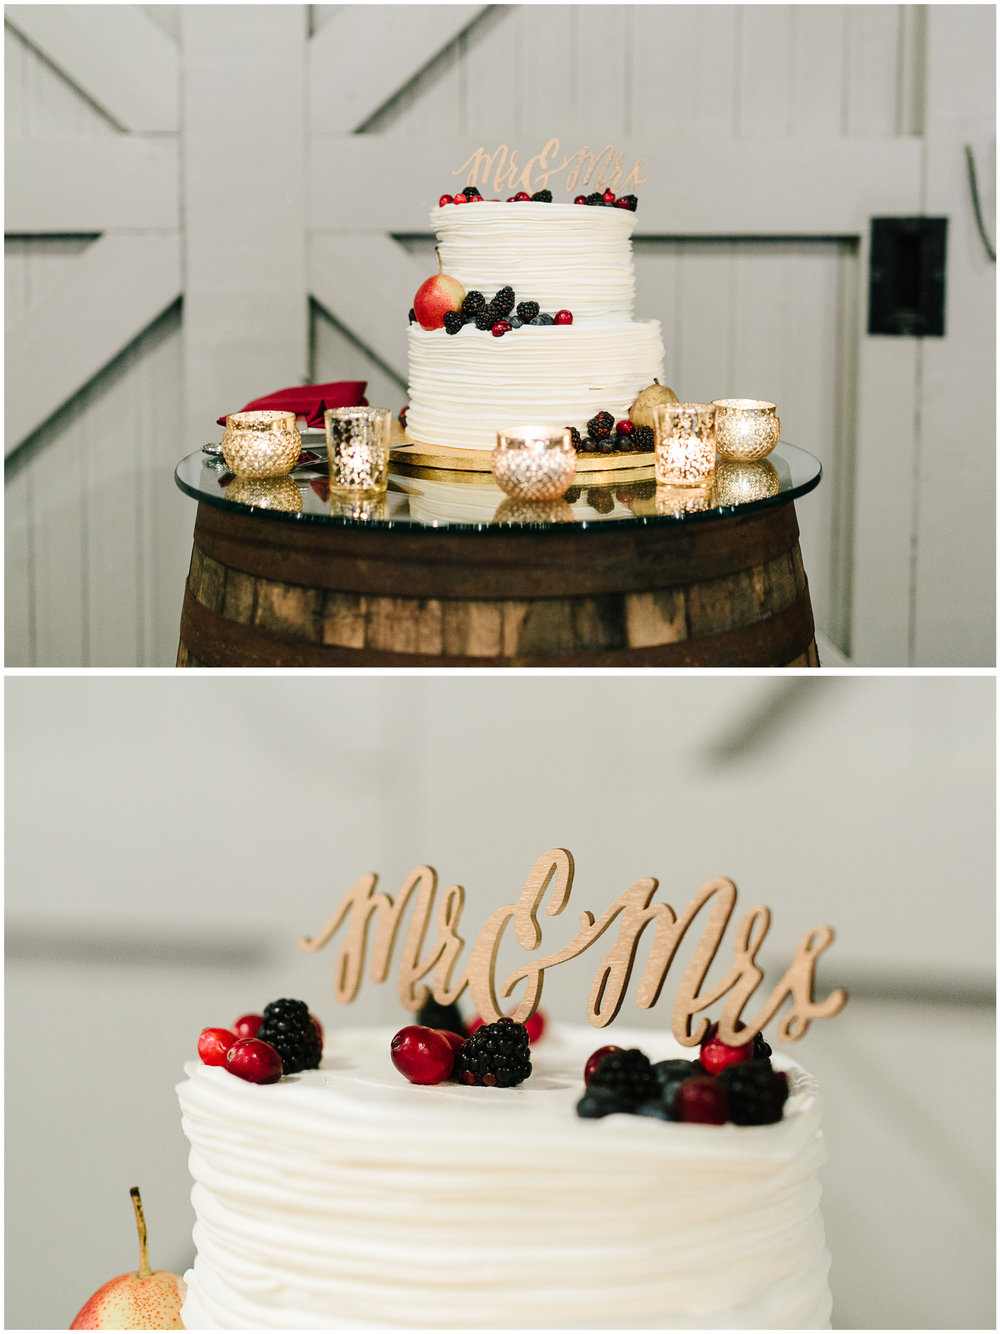 Custom wedding cake with fresh berries, topped with Mr. and Mrs.